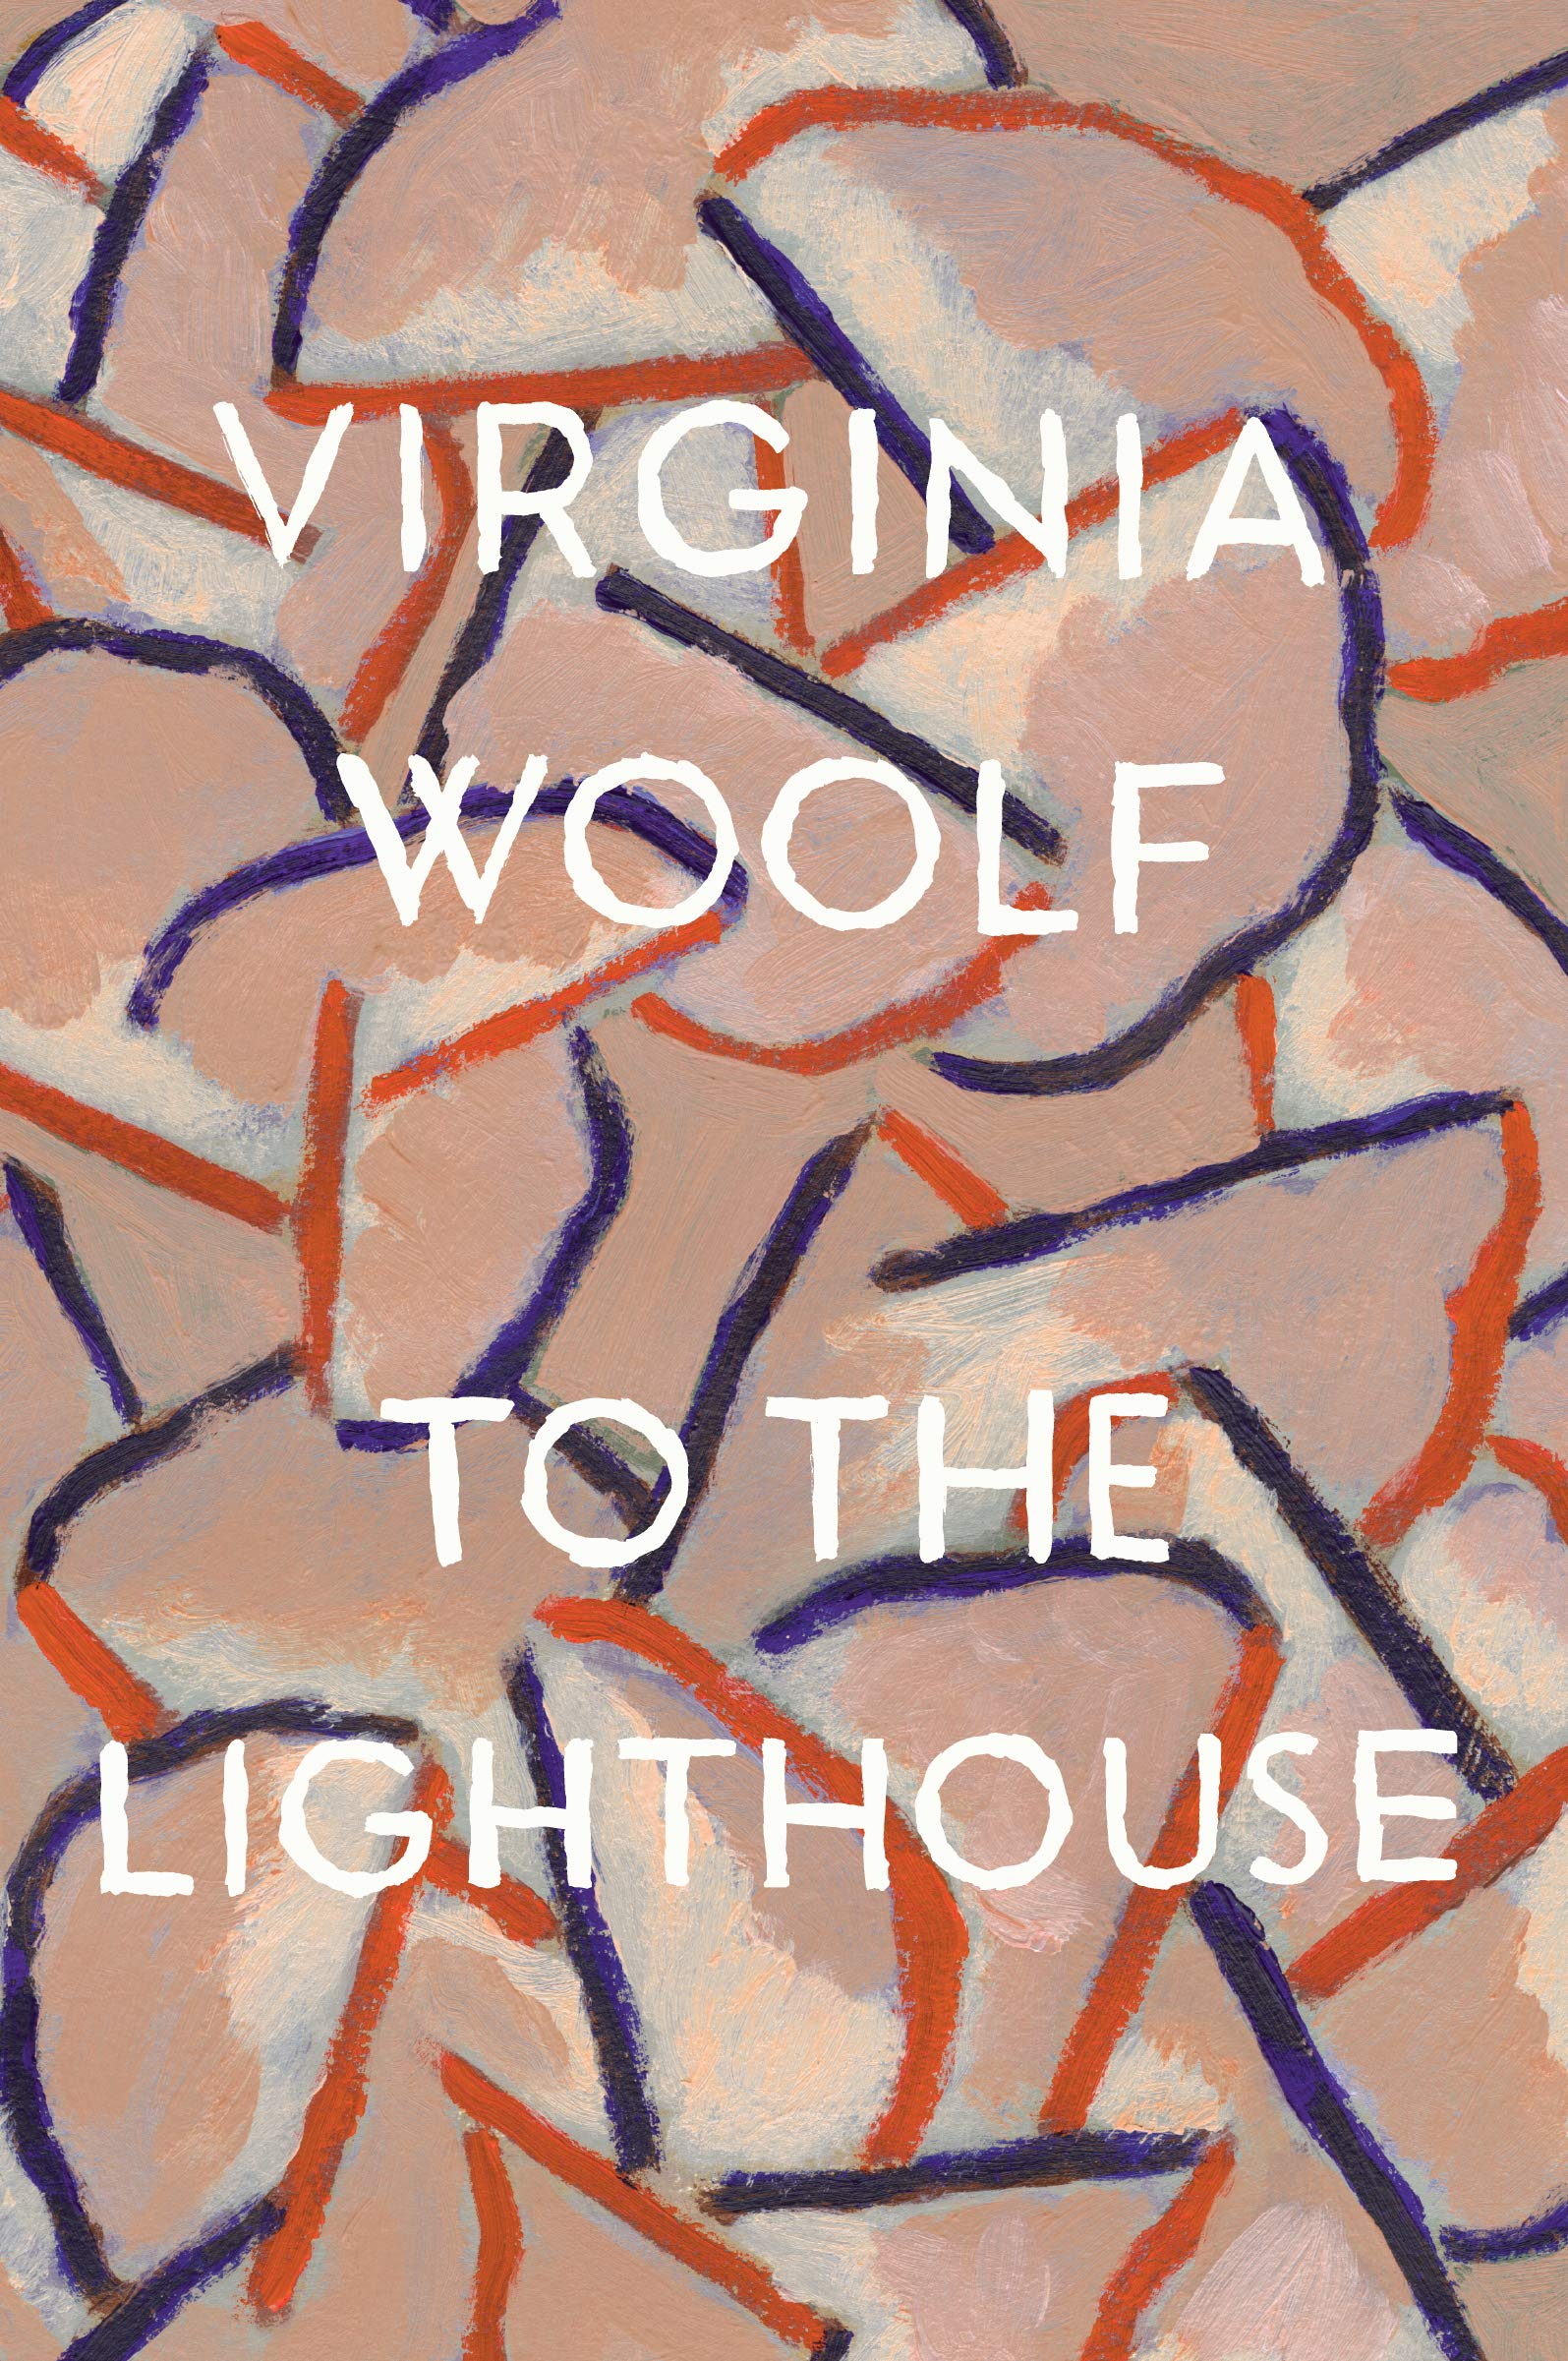 To The Lighthouse Virginia Woolf Eudora Welty 9780156907392